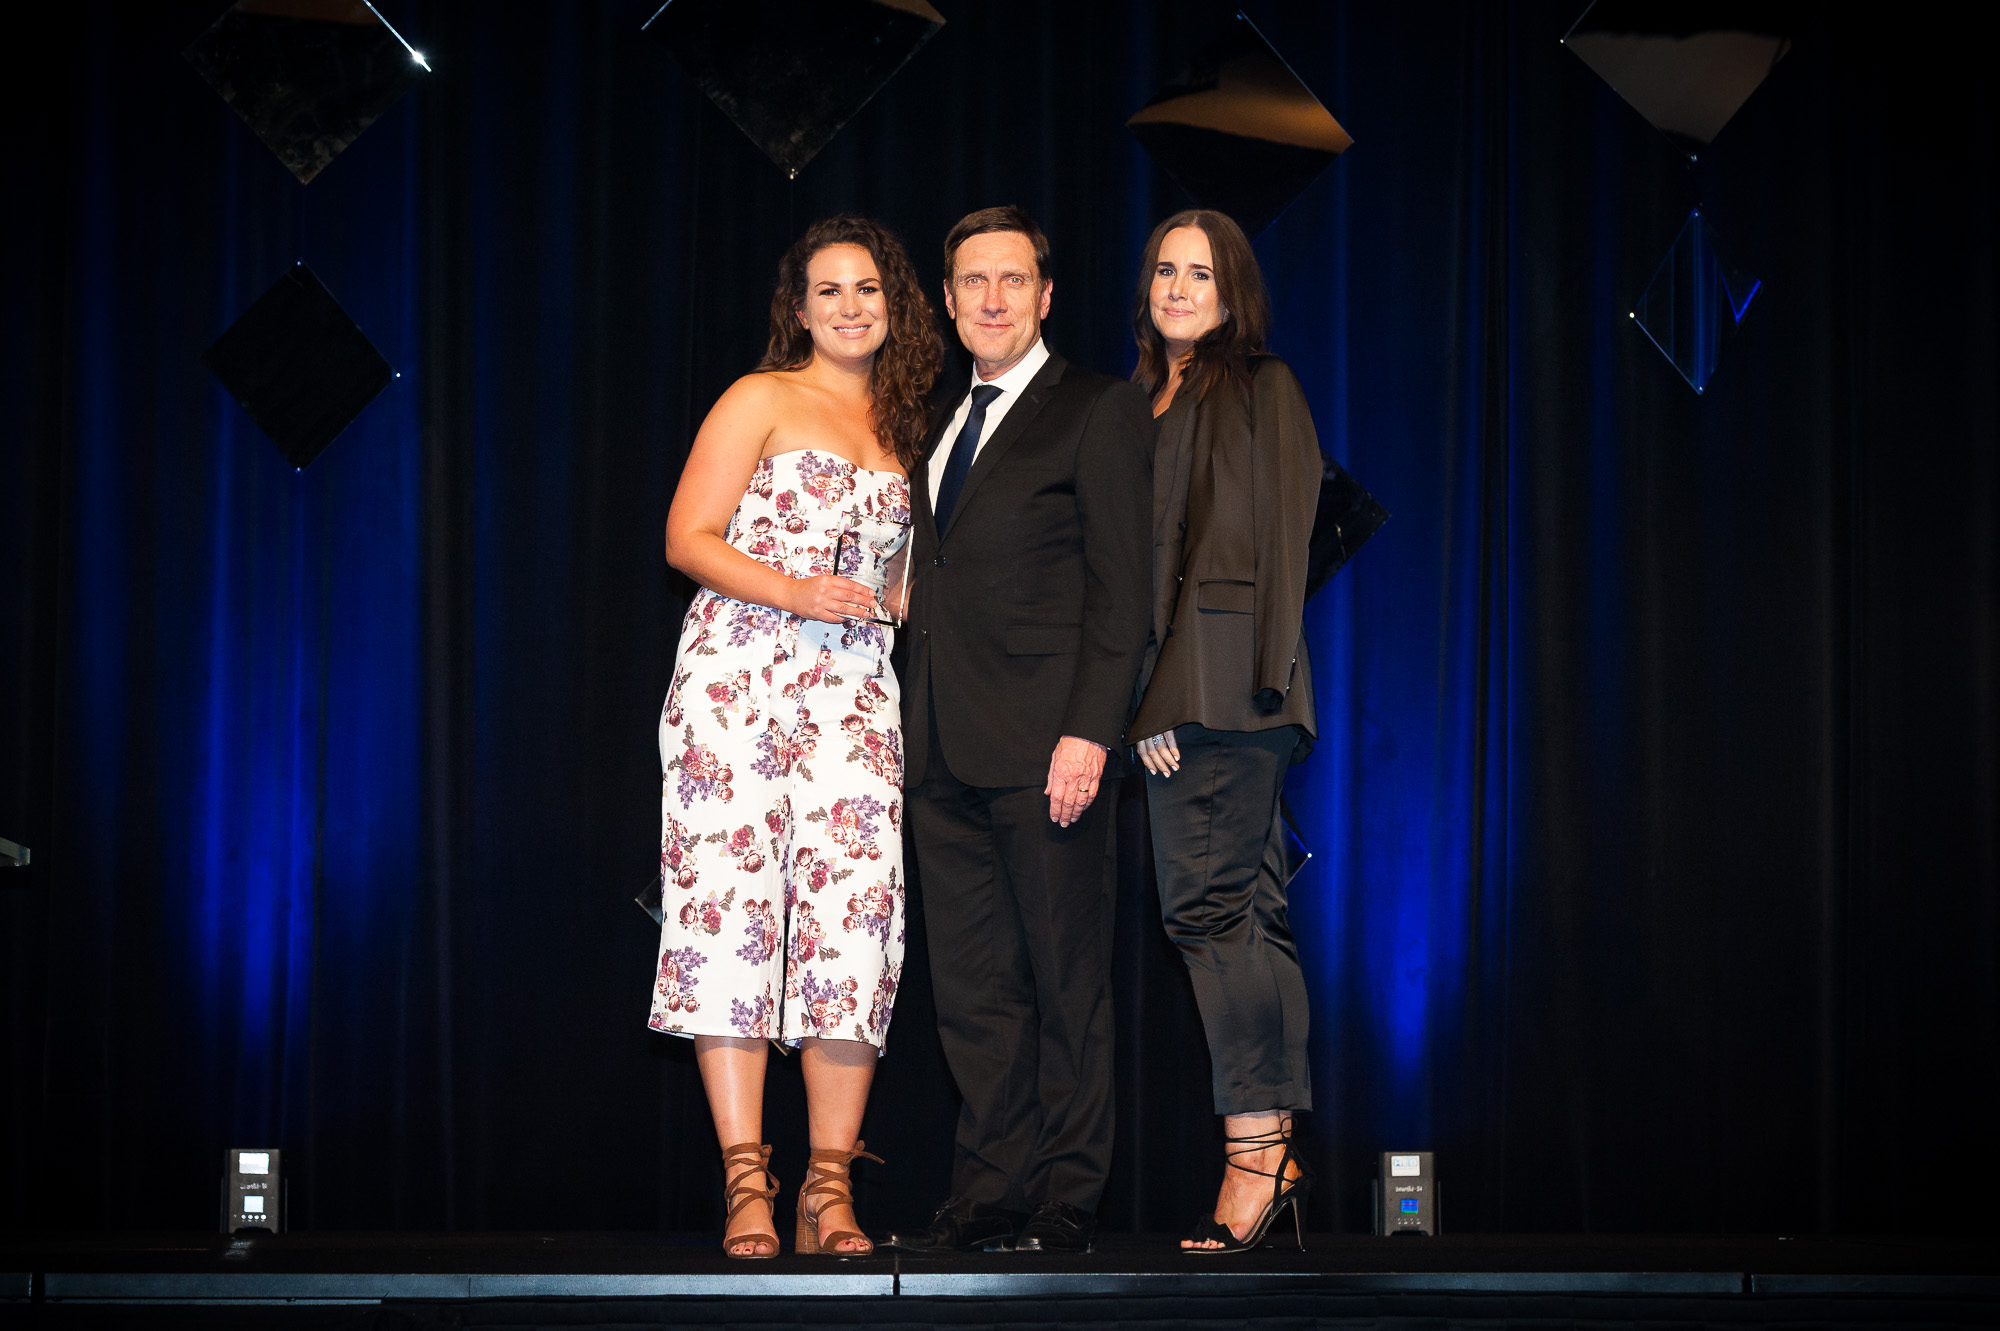 PCWA 2017 Awards Low Res- 0134 - 7709.jpg